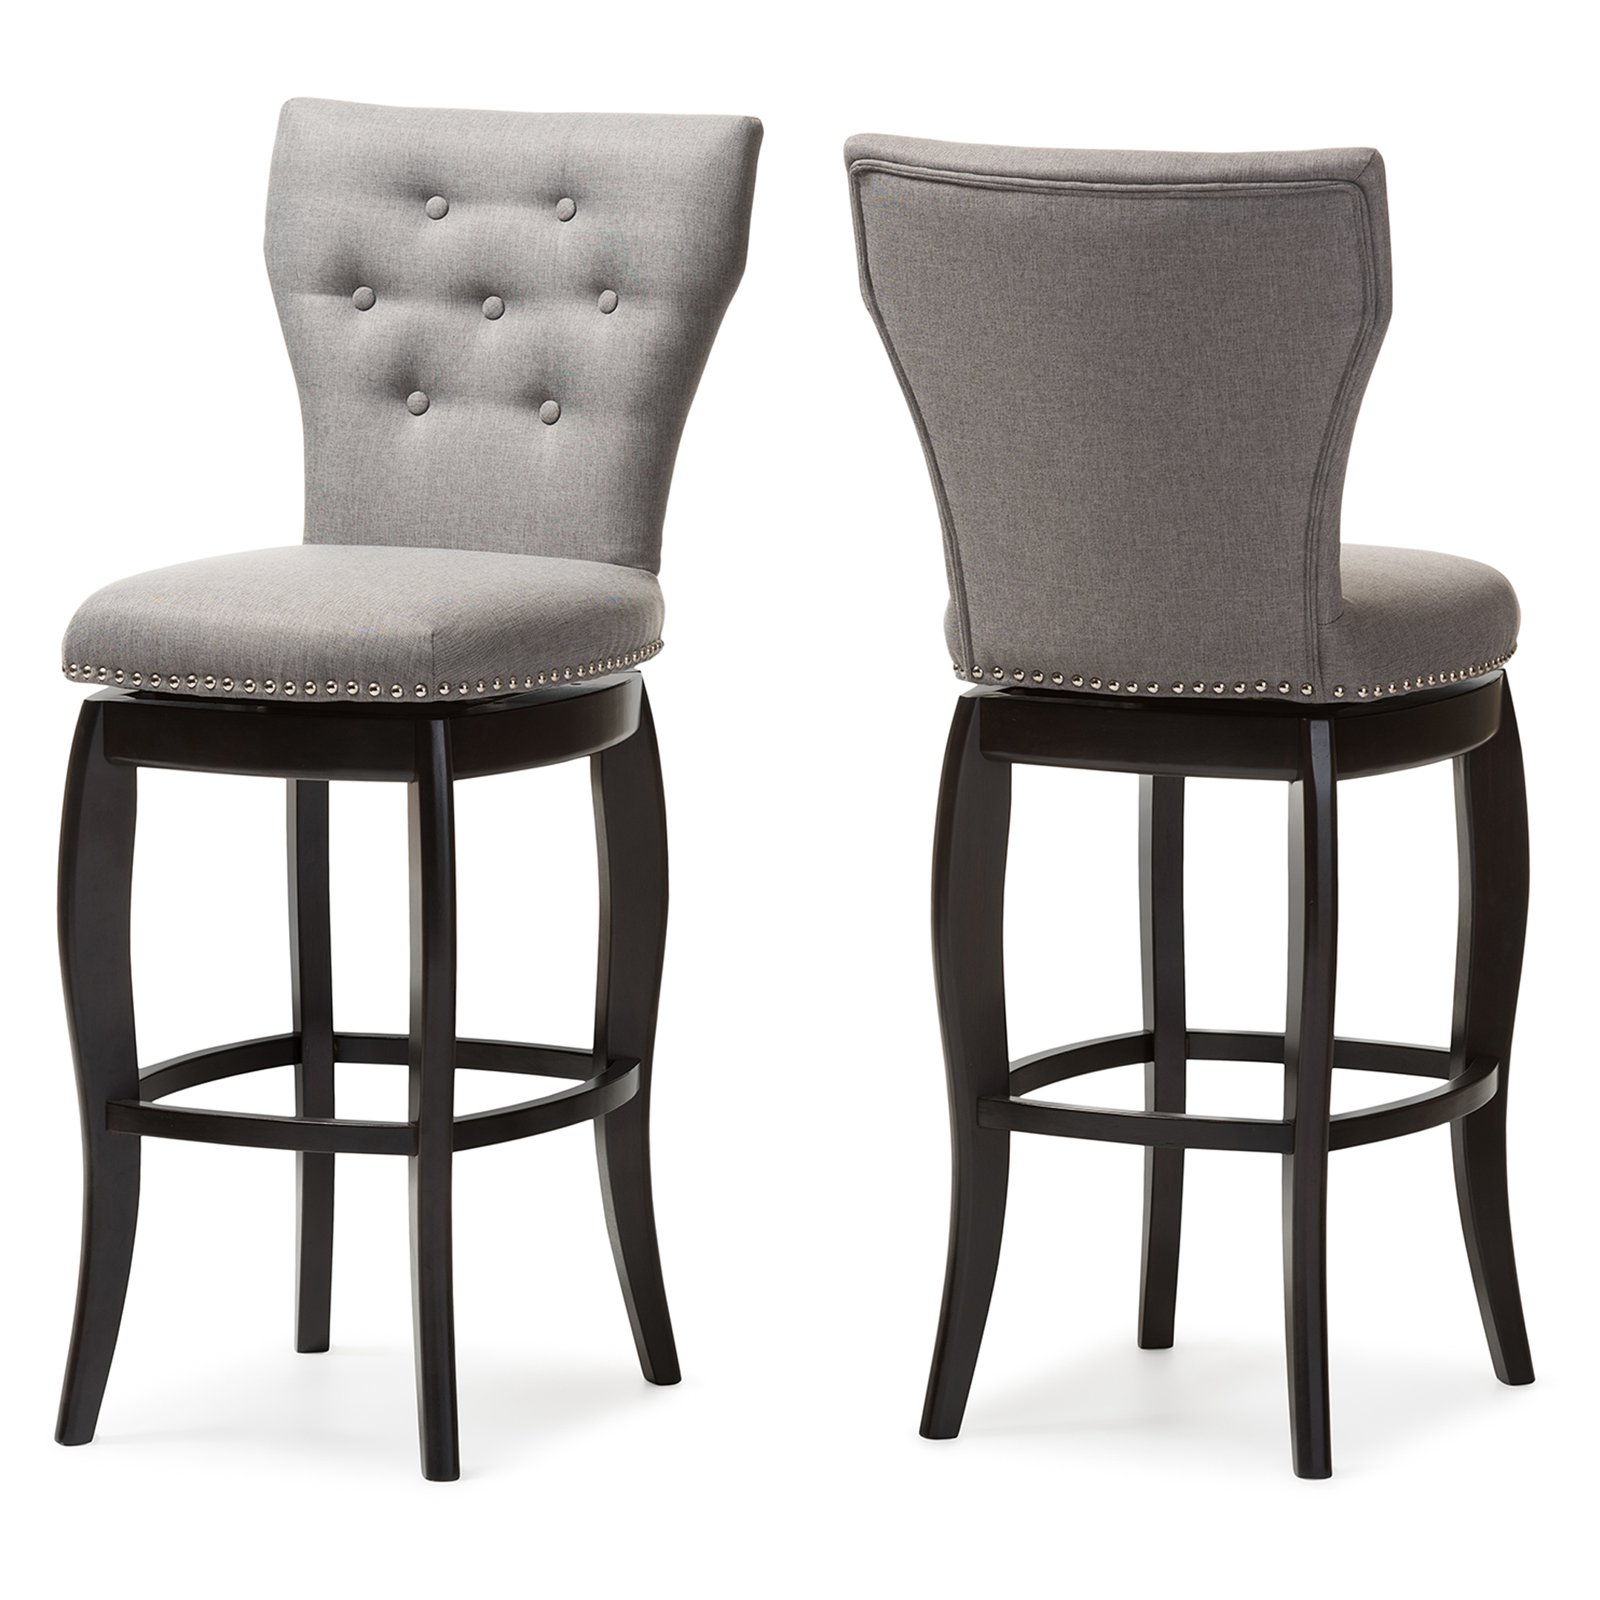 Baxton Studio Leonice 30 in. Bar Stool Set of 2 by Wholesale Interiors